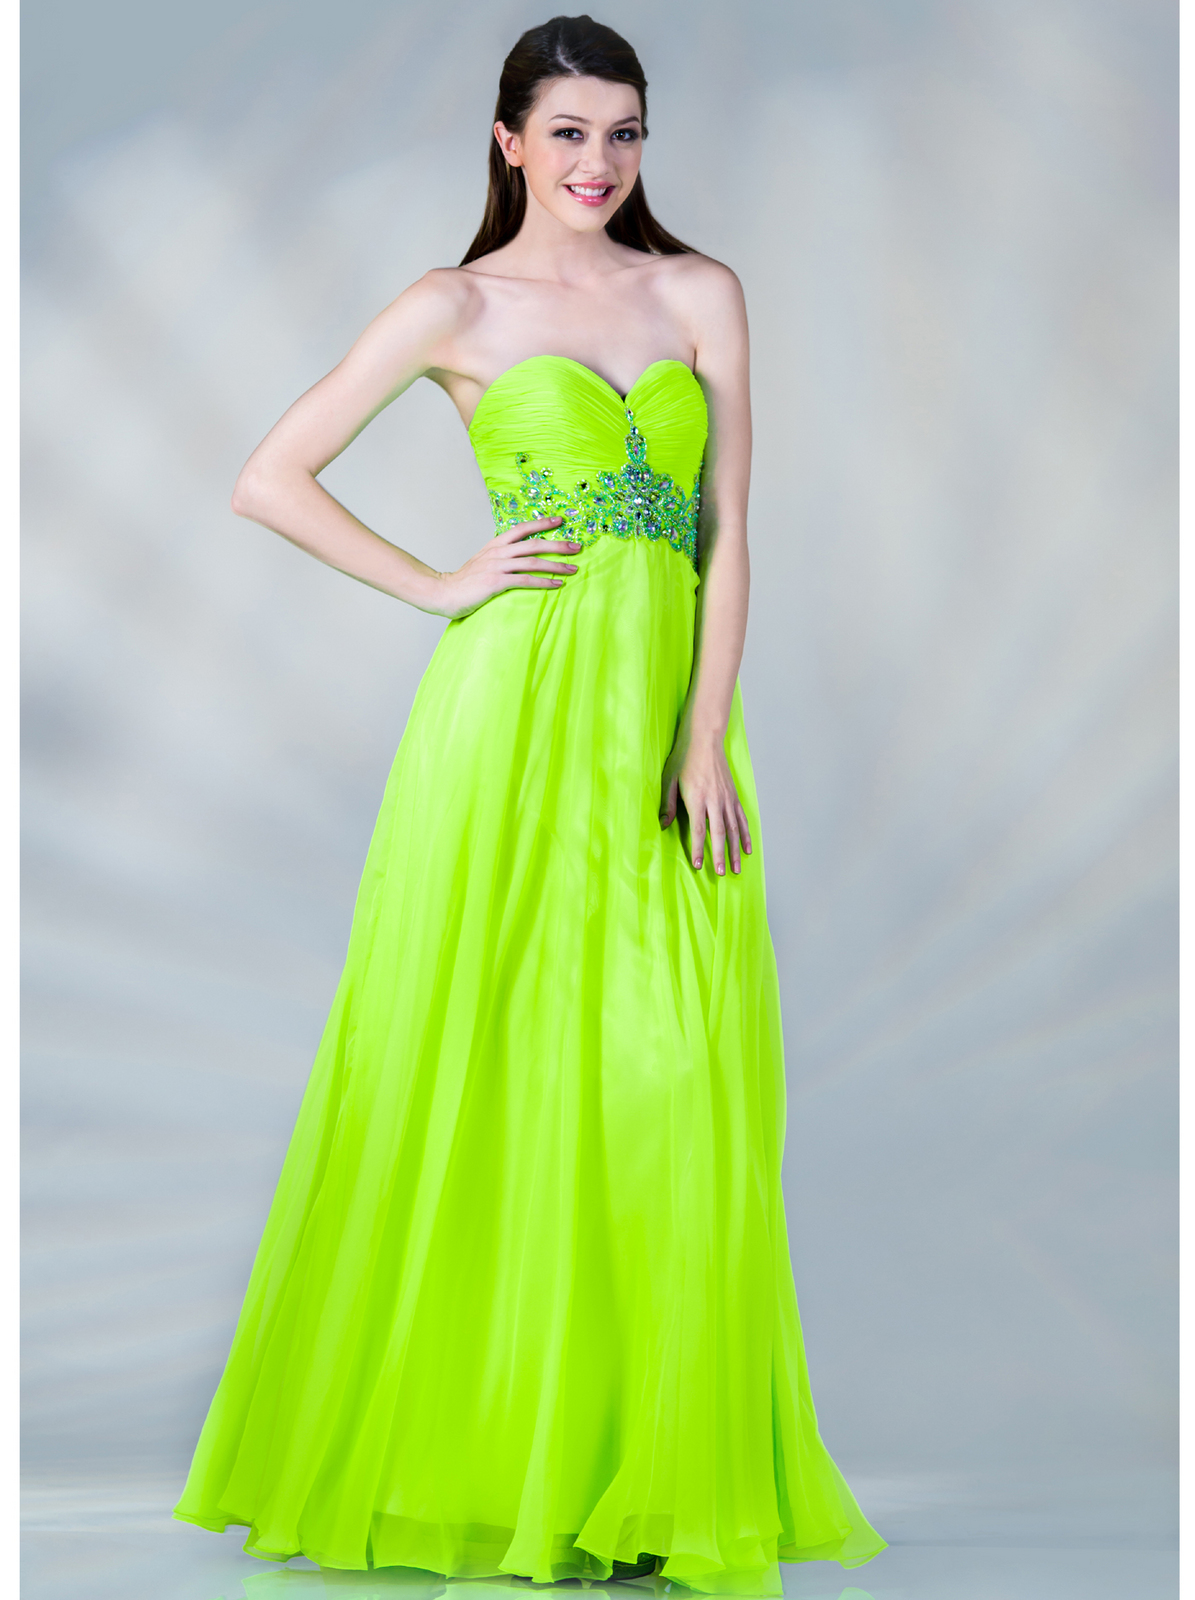 Beaded and Jeweled Prom Dress | Sung Boutique L.A.